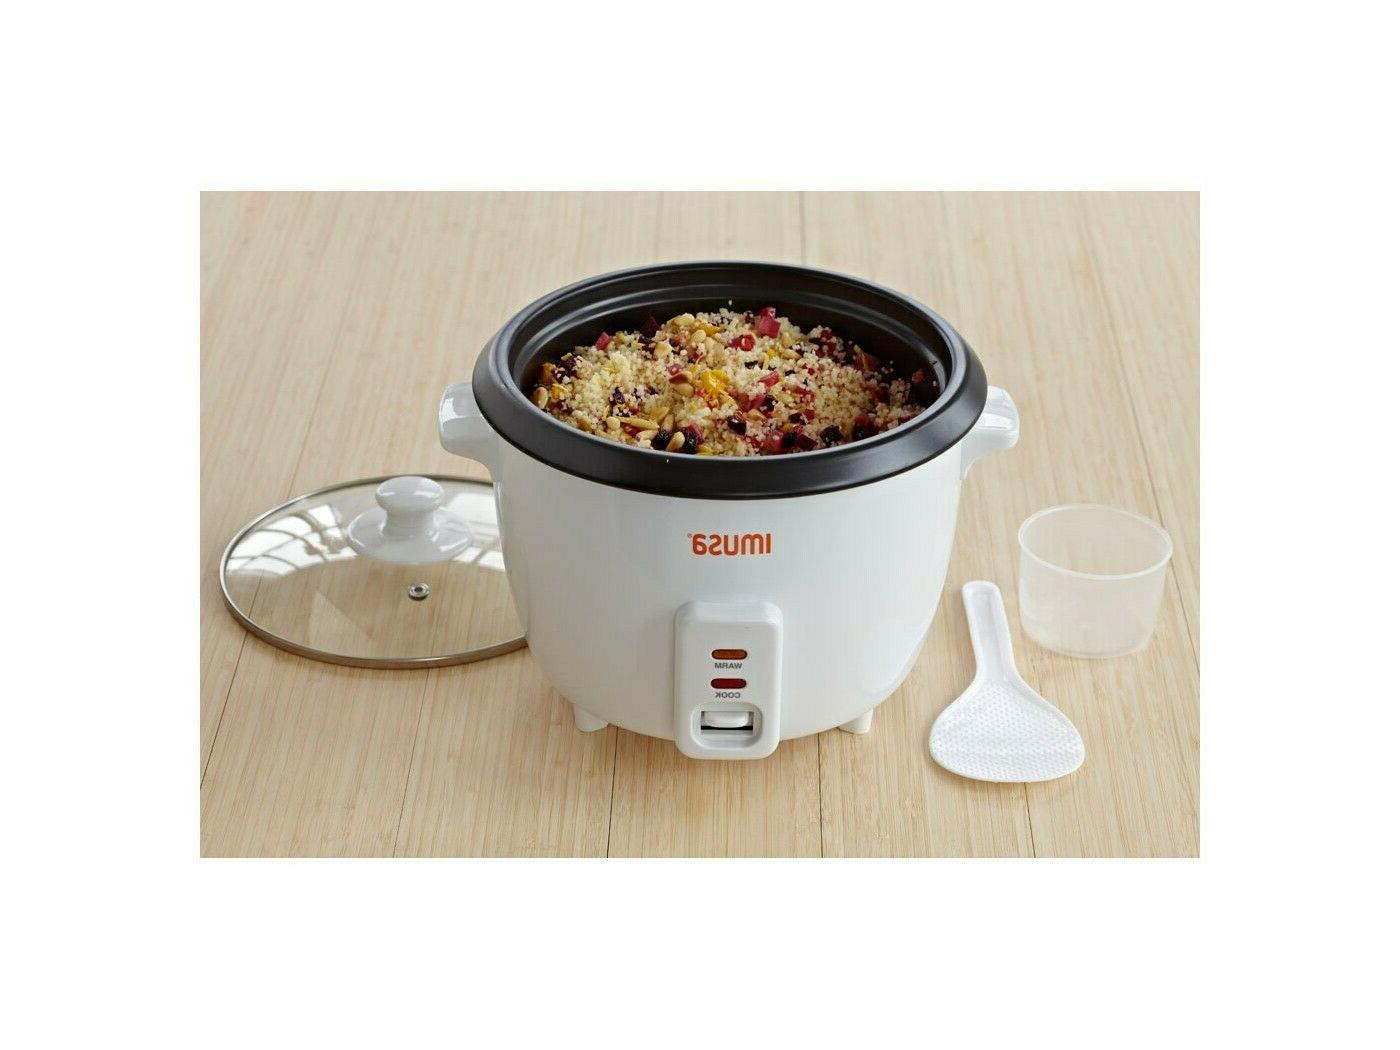 400W Cooker Stick Removable Cooking Pot Best Classic